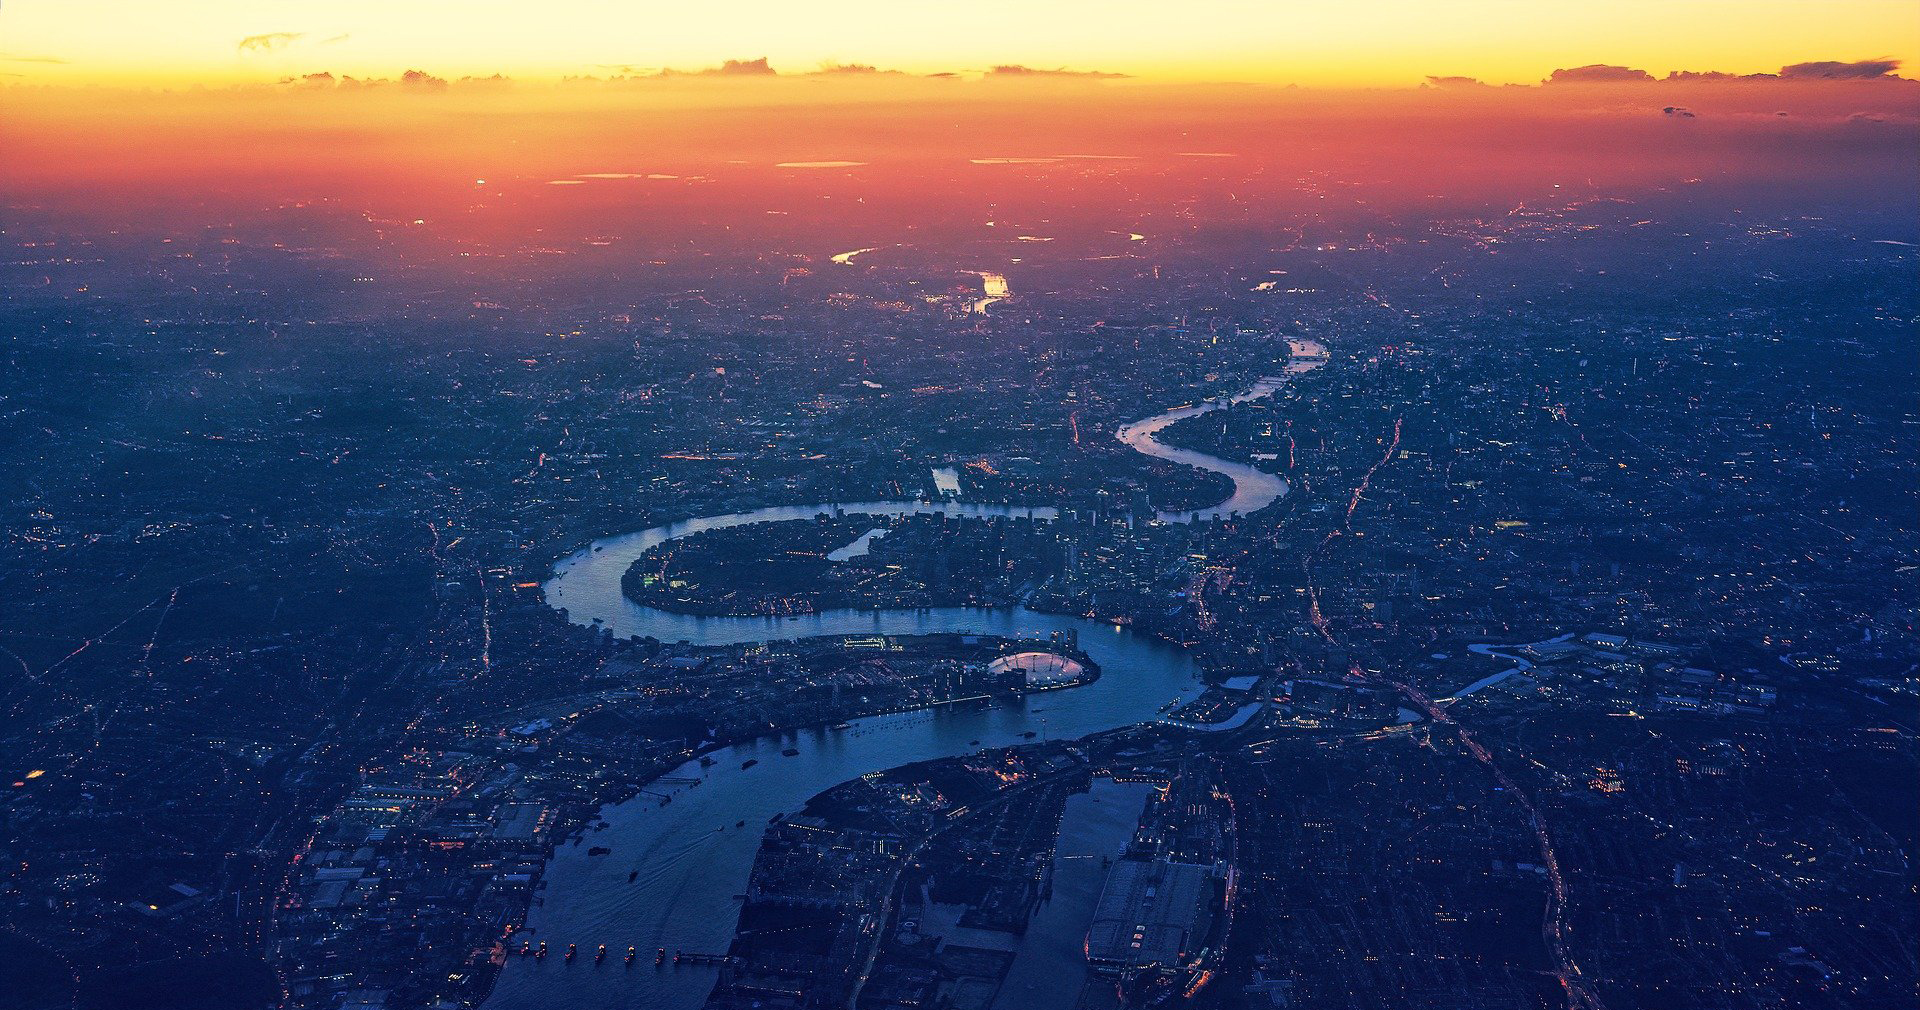 Aerial view over London at sunset